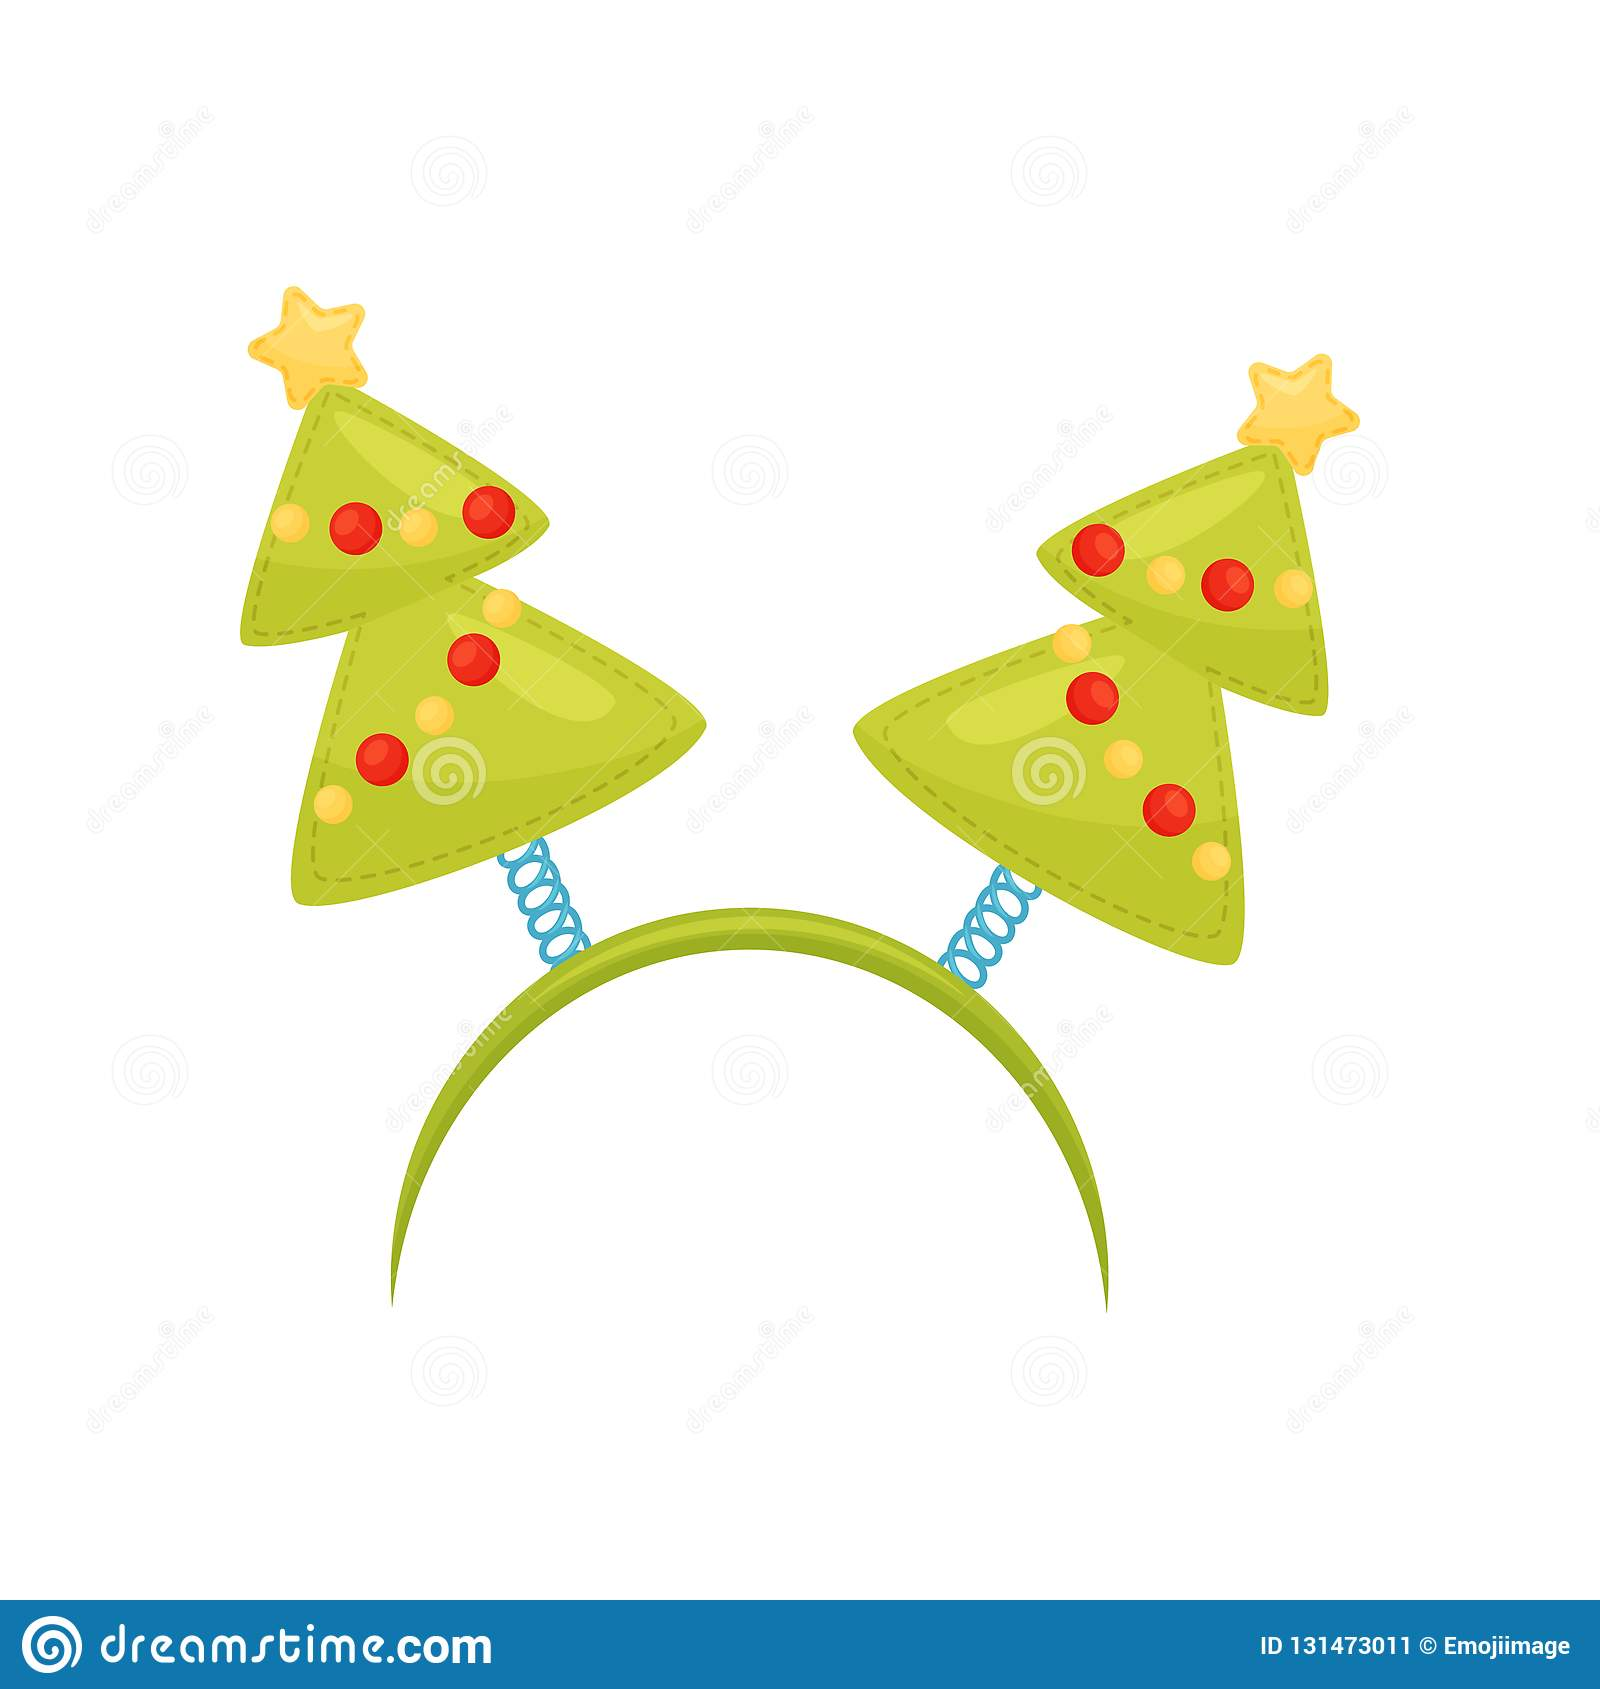 Festive hair hoop with Christmas trees. Holiday accessory for party. Holiday headband. Flat vector design